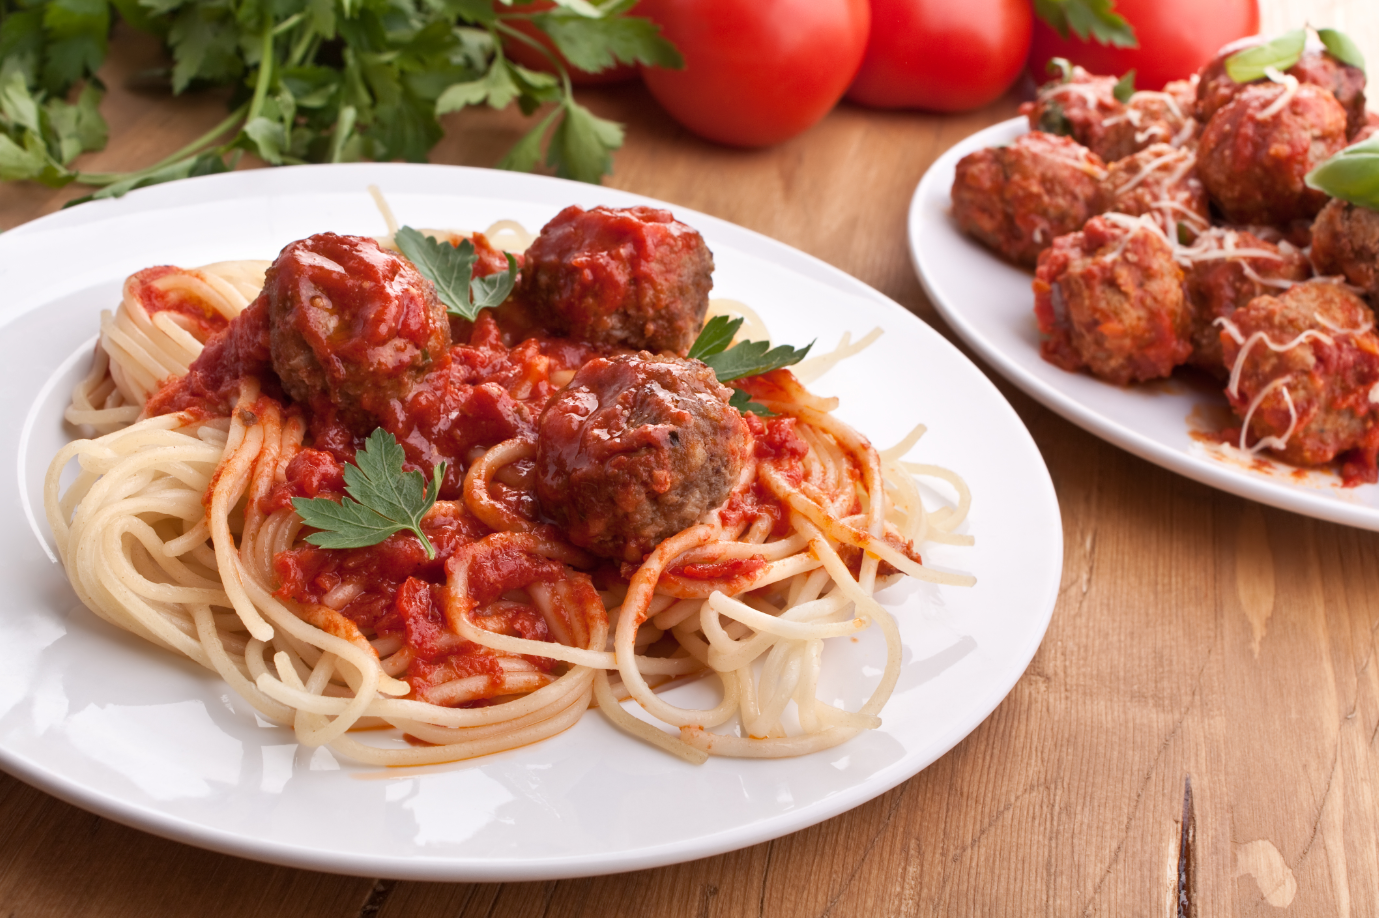 spaghetti with meatballs and red sauce